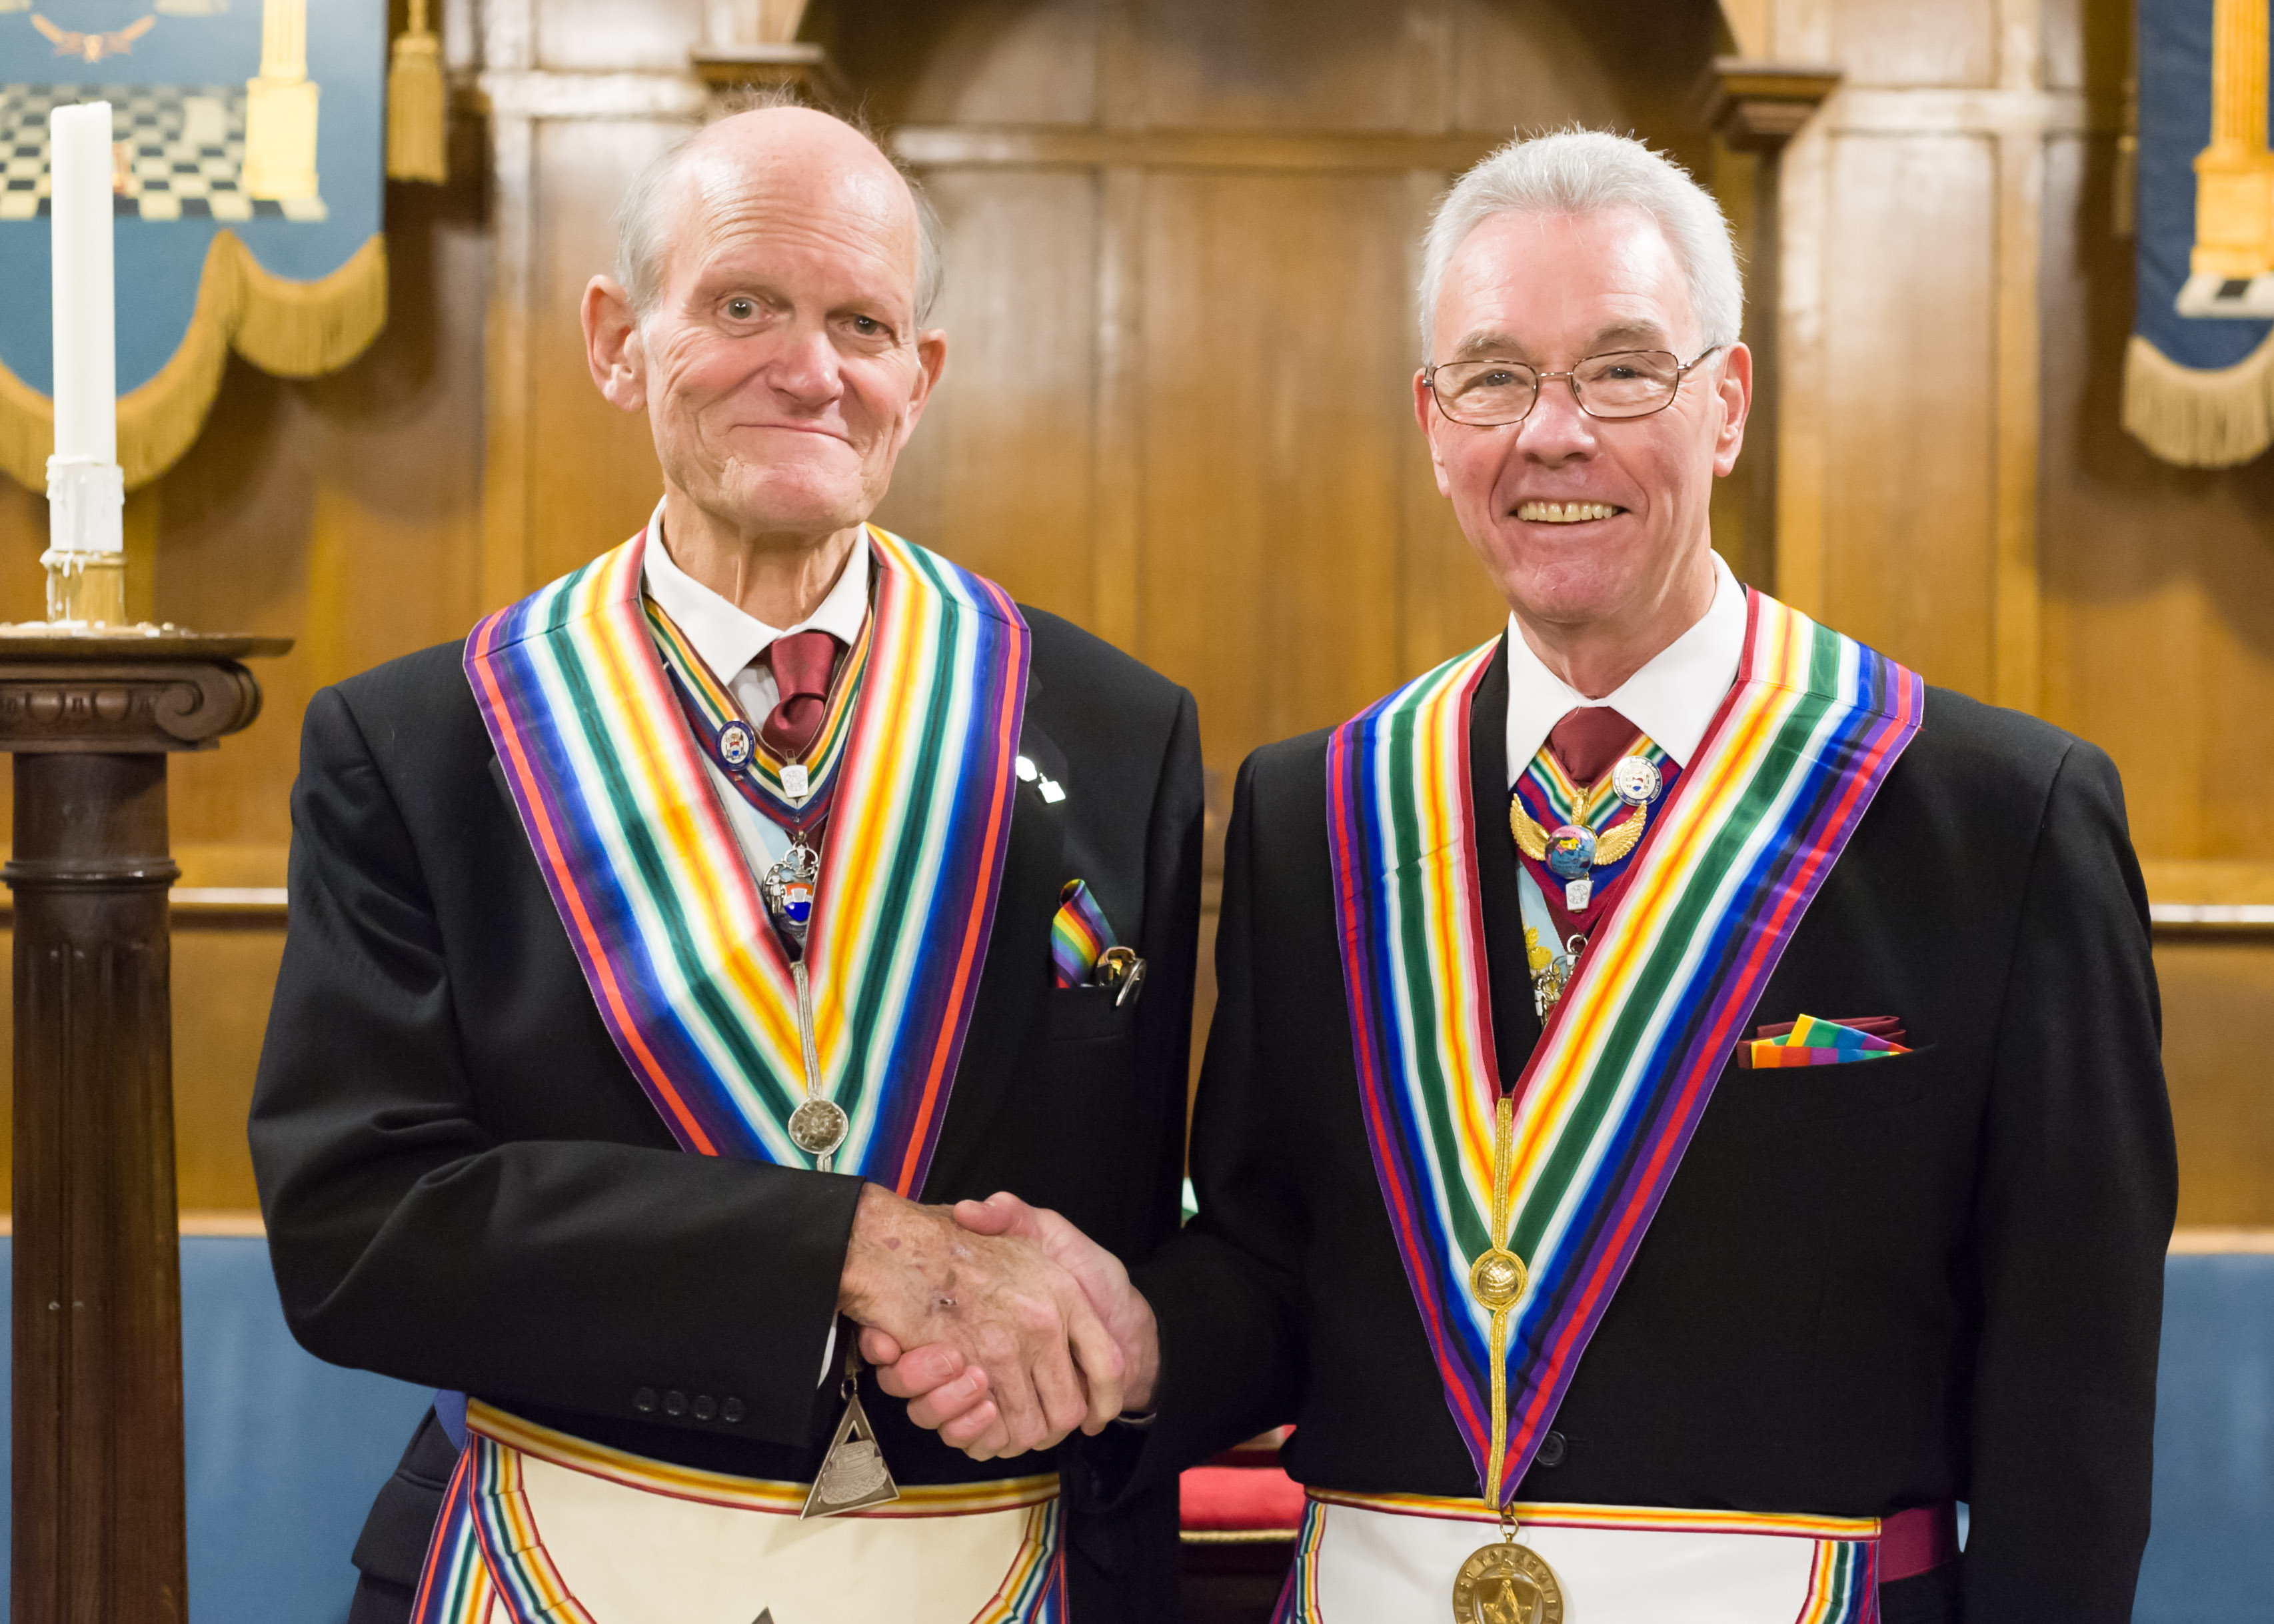 A new Commander at the Helm as Abbey Lodge of RAM No. 768 sails into 2019